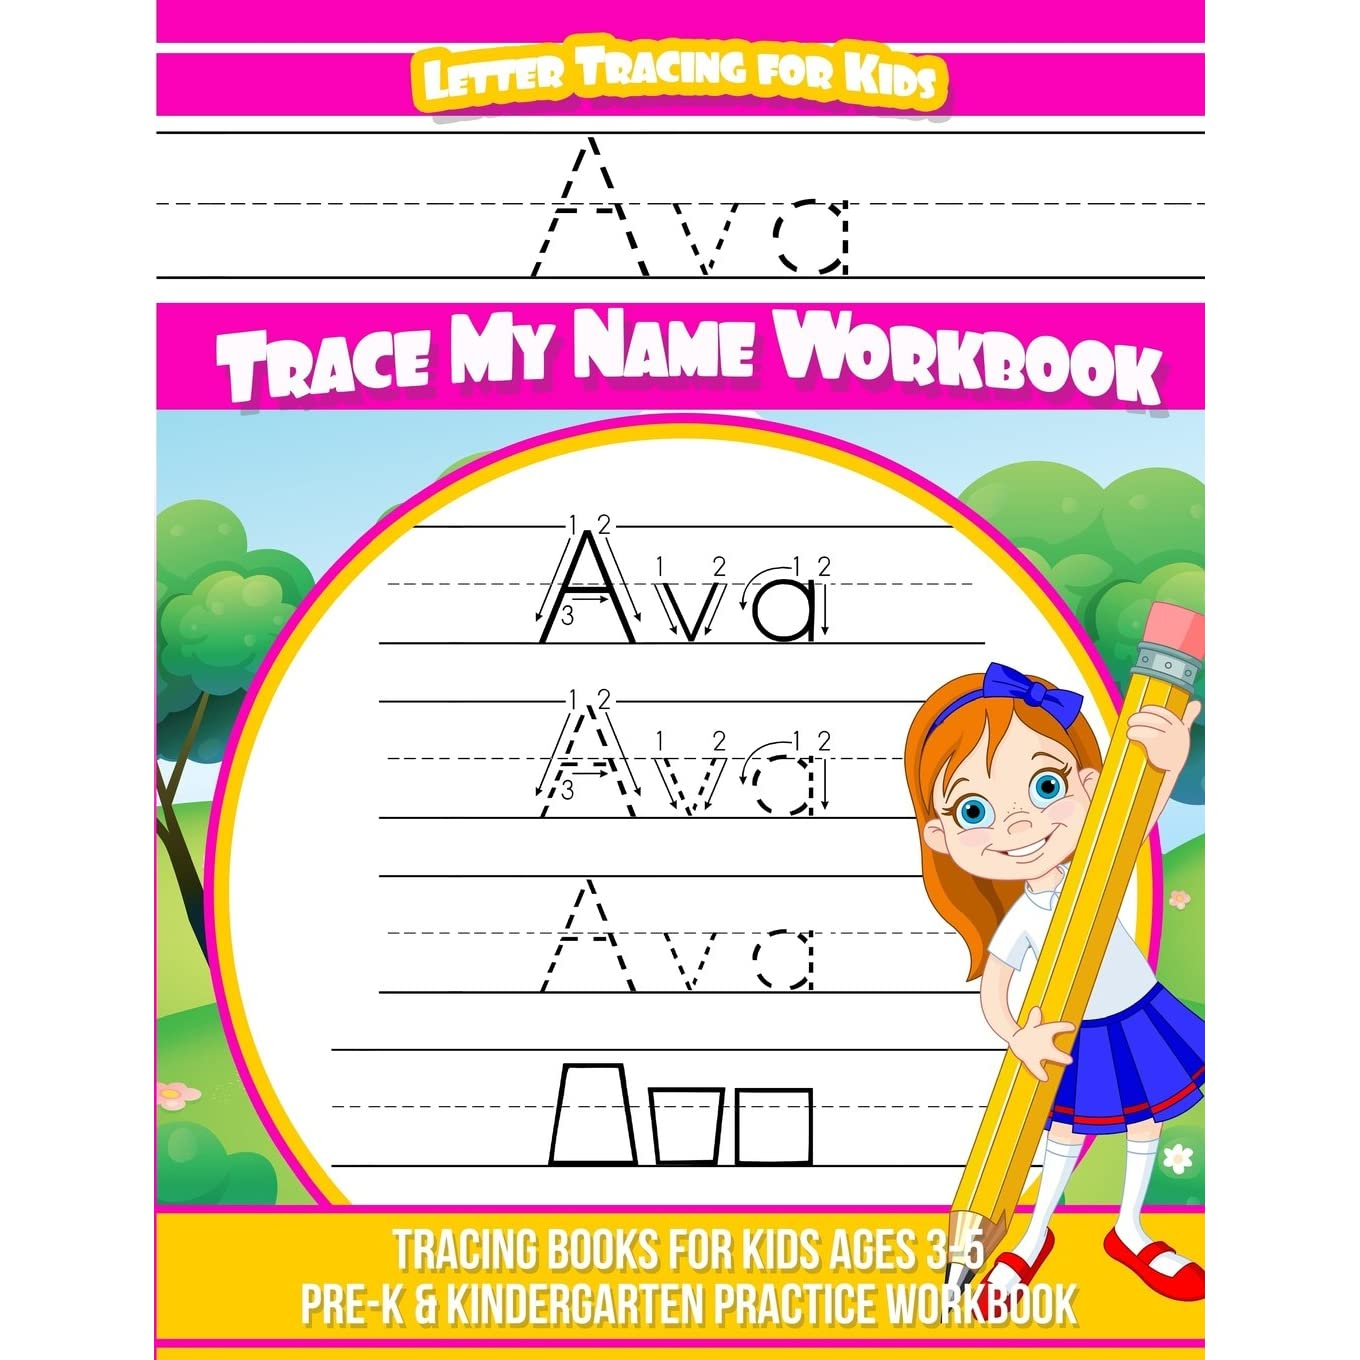 Ava Letter Tracing For Kids Trace My Name Workbook: Tracing